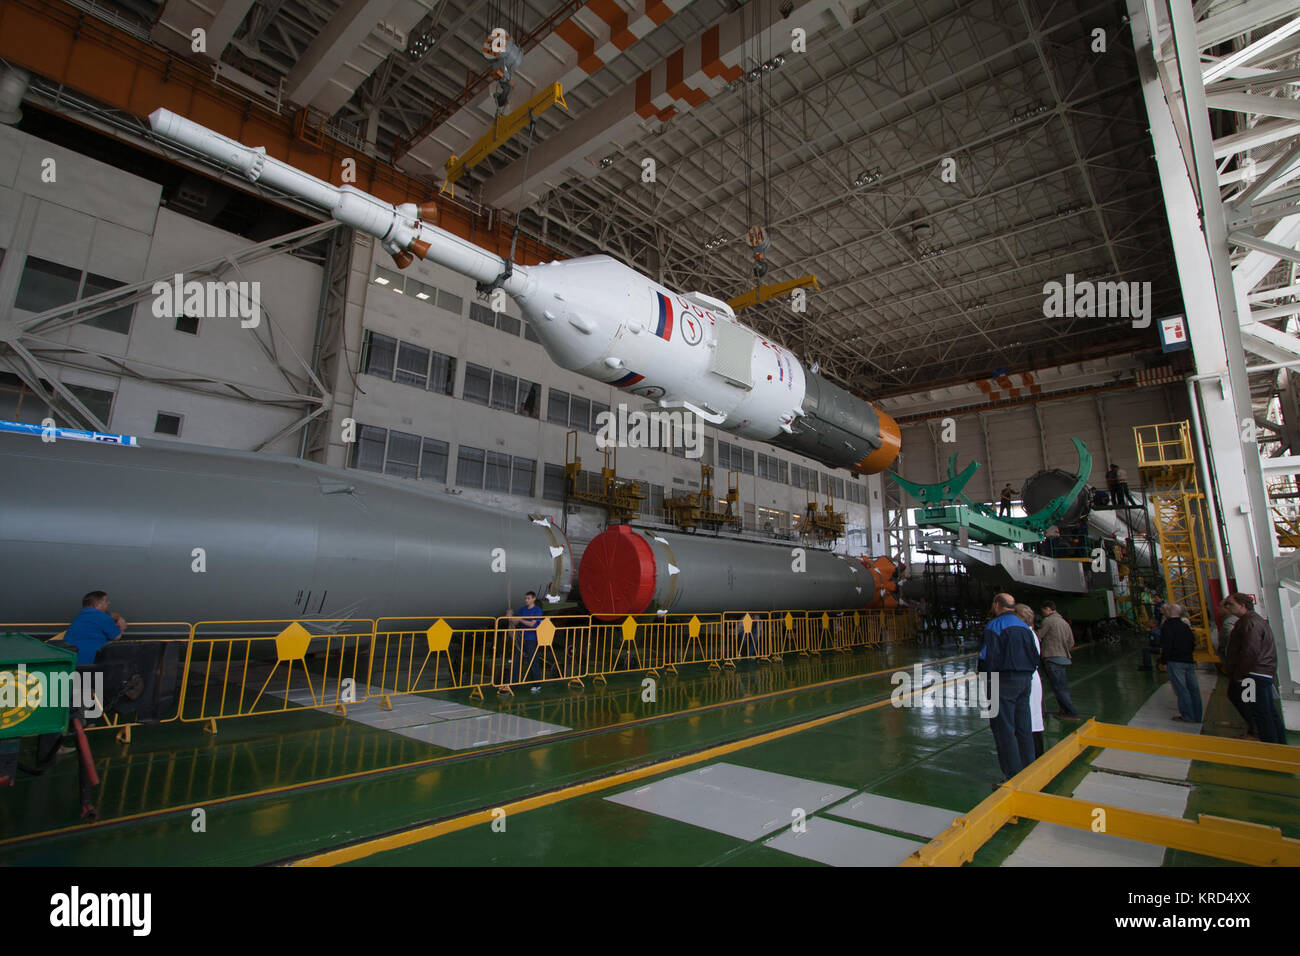 The Soyuz rocket and Soyuz TMA-10M spacecraft are assembled at Building 112 on the Baikonur Cosmodrome, on Sunday, - Stock Image